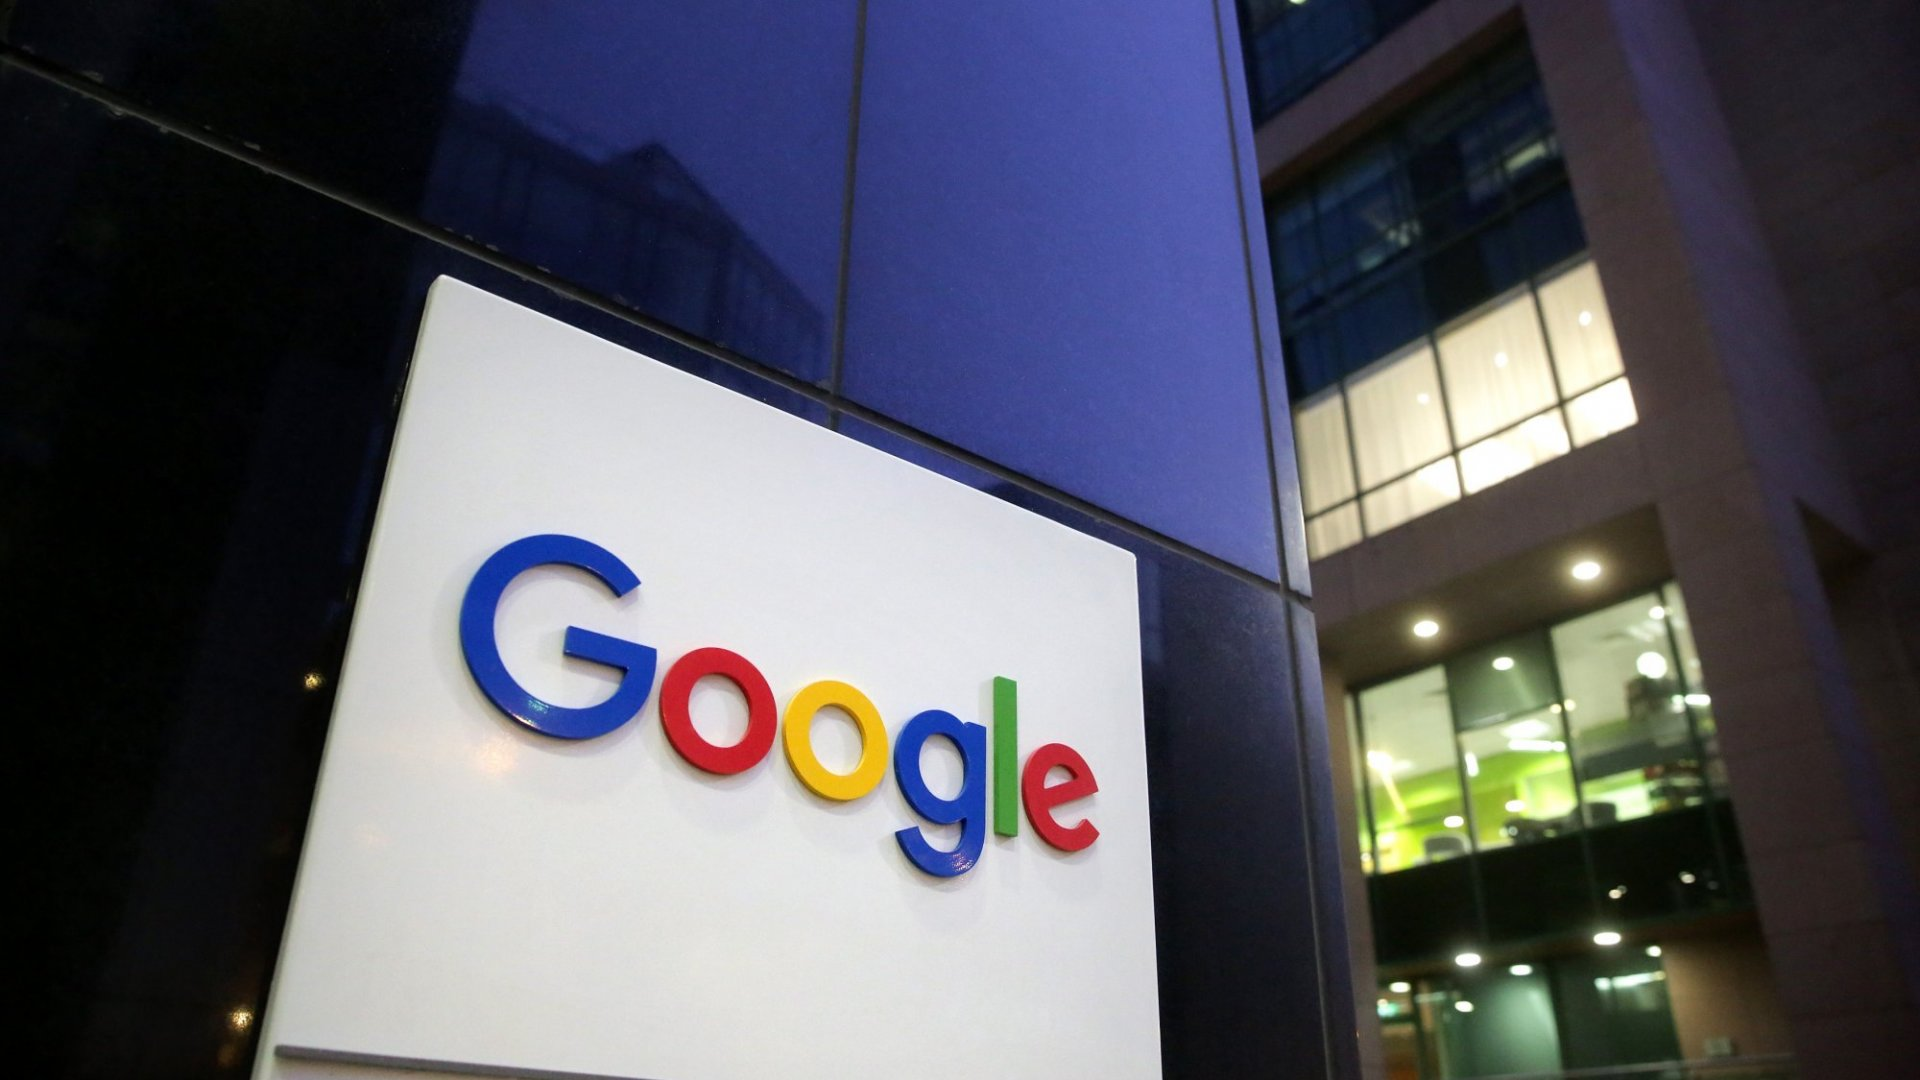 Google Managers Use This Simple Framework to Coach Employees